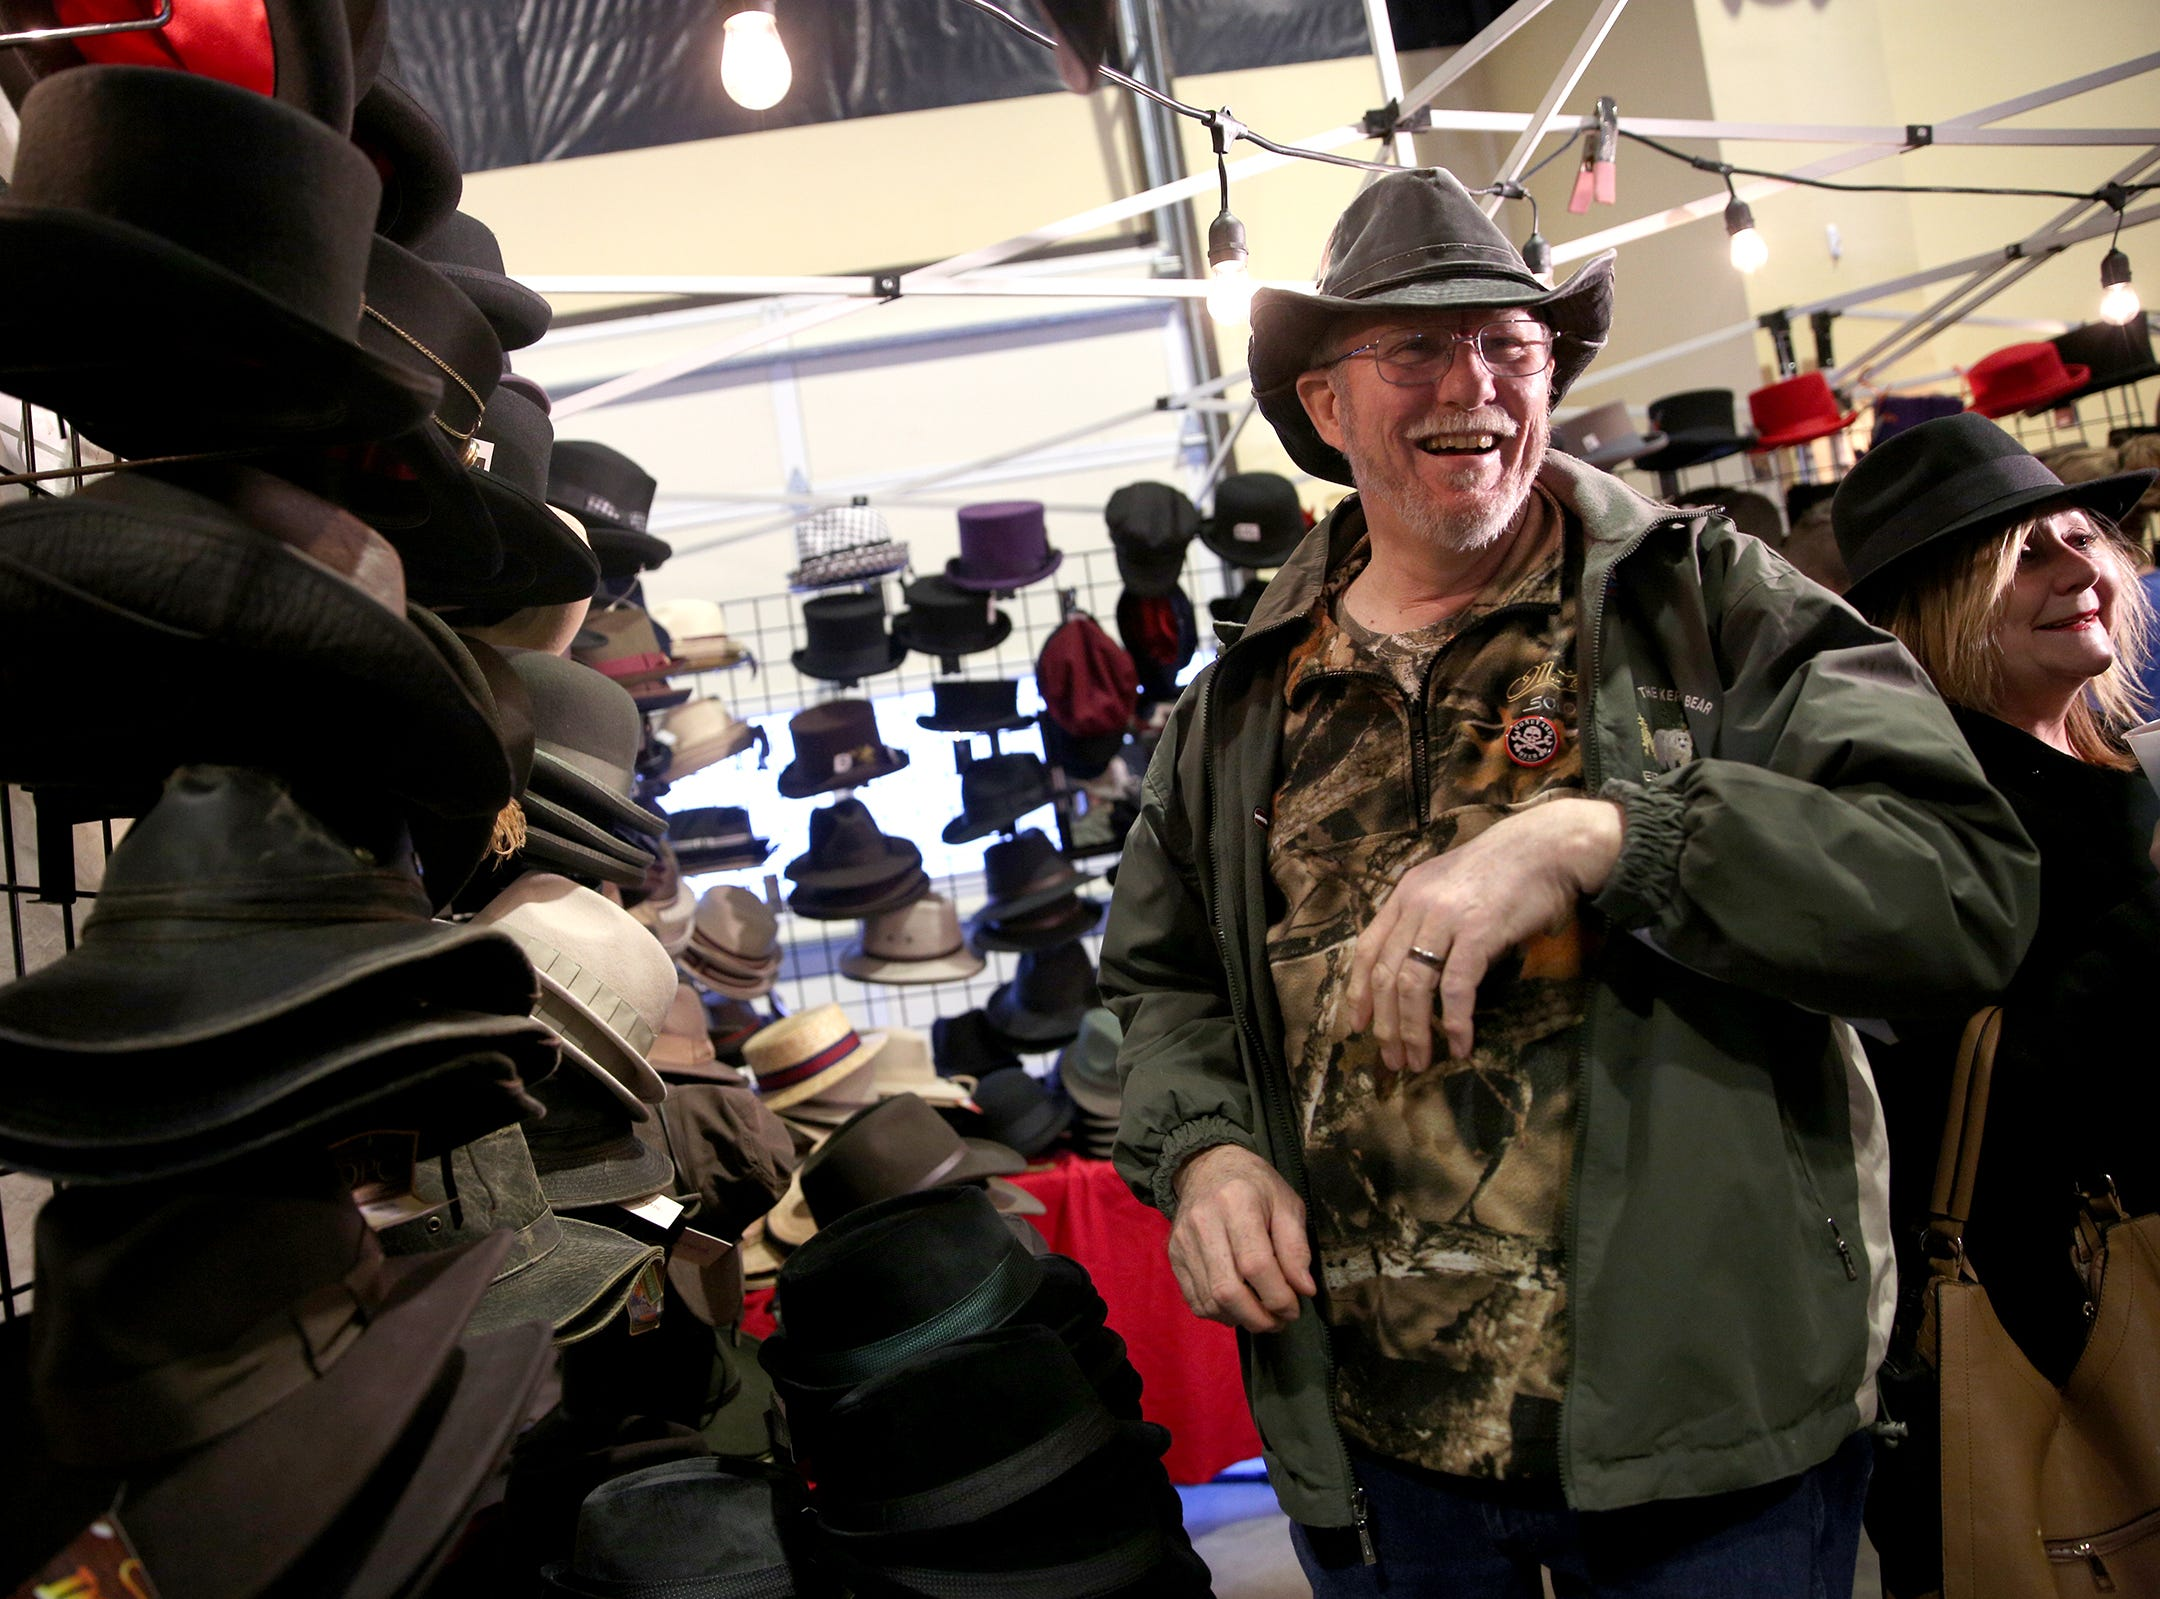 Ted Robinson, of Molalla, tries on a hat at a booth at the annual Volksfest in Mt. Angel on Saturday, March 2, 2019.